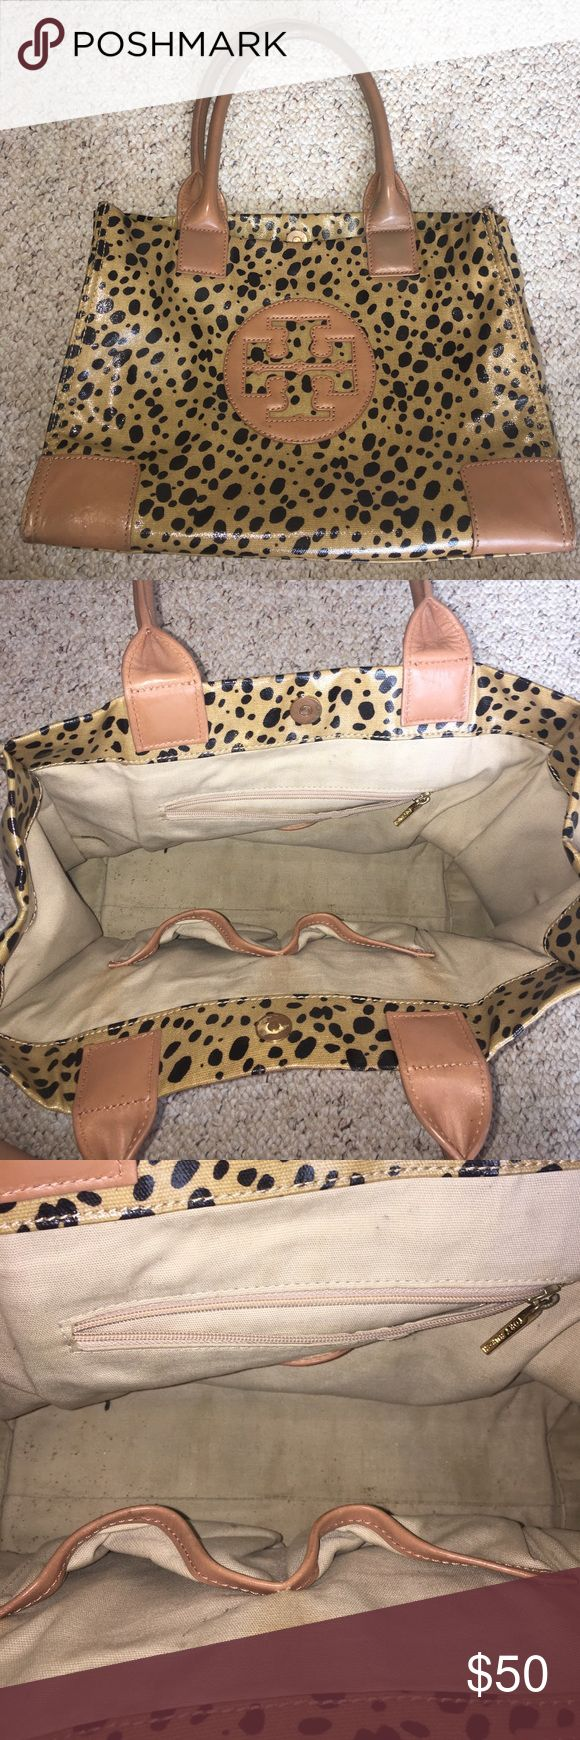 Tori Burch Limited Edition Tote Well loved, Tori Burch limited edition cheetah tote. Pictures indicate flaws and price. Had leather refinished at Tory Burch International Mall in Tampa, FL. Inside needs to be cleaned, but will leave that to buyer. Outside displays minor flaws. Please refer to pictures. Tory Burch Bags